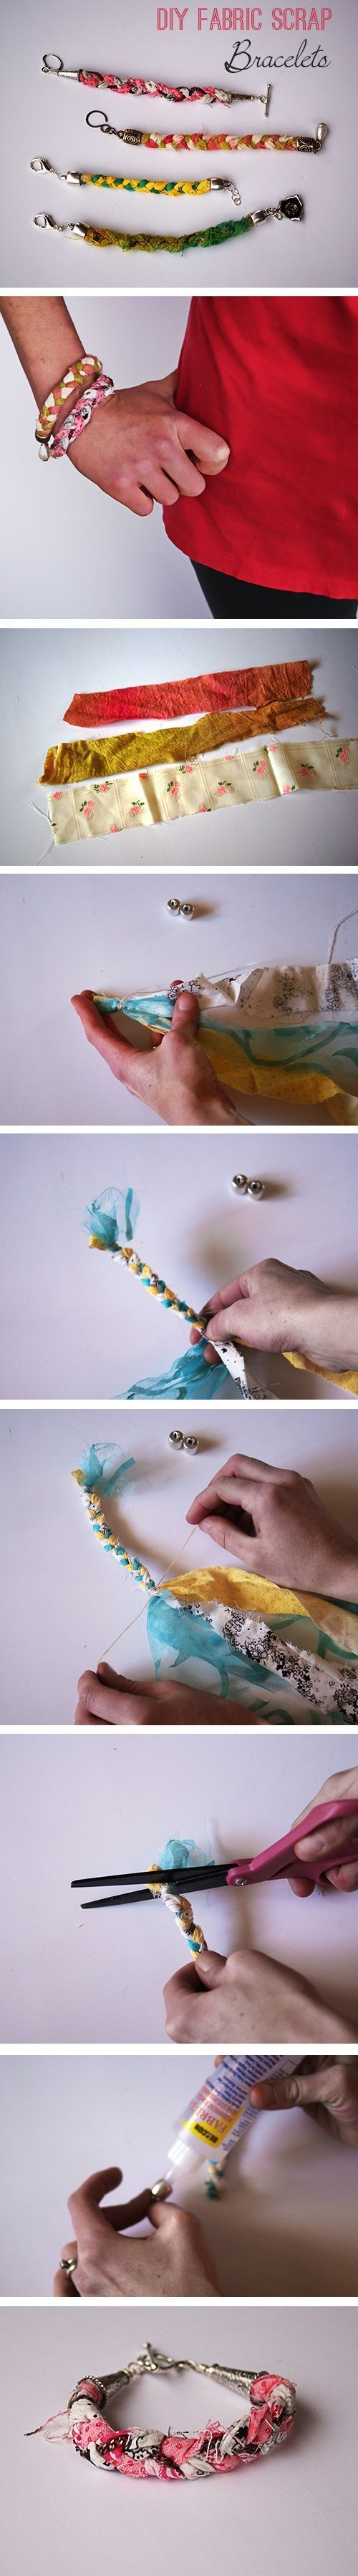 Fabric Bracelet With Scrap | Viral On Web